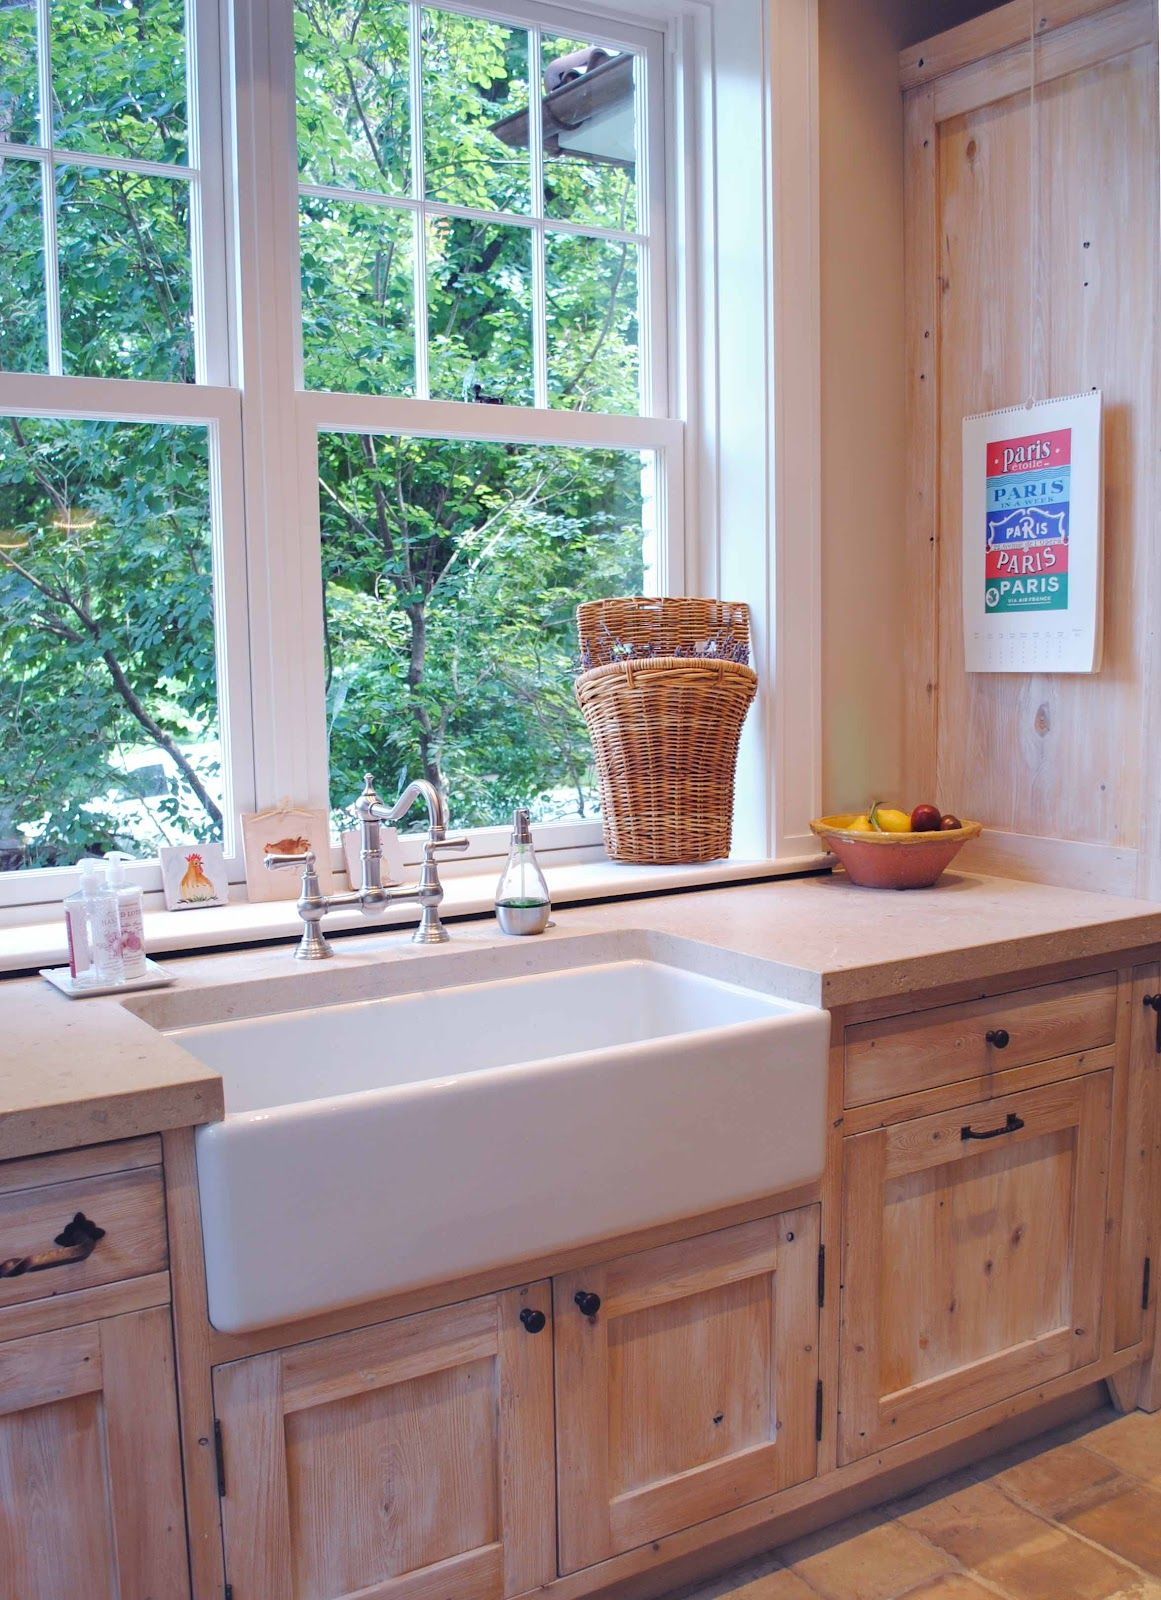 Custom Aged And White Washed Finish Kitchen Renovation Kitchen Sink Design Home Kitchens